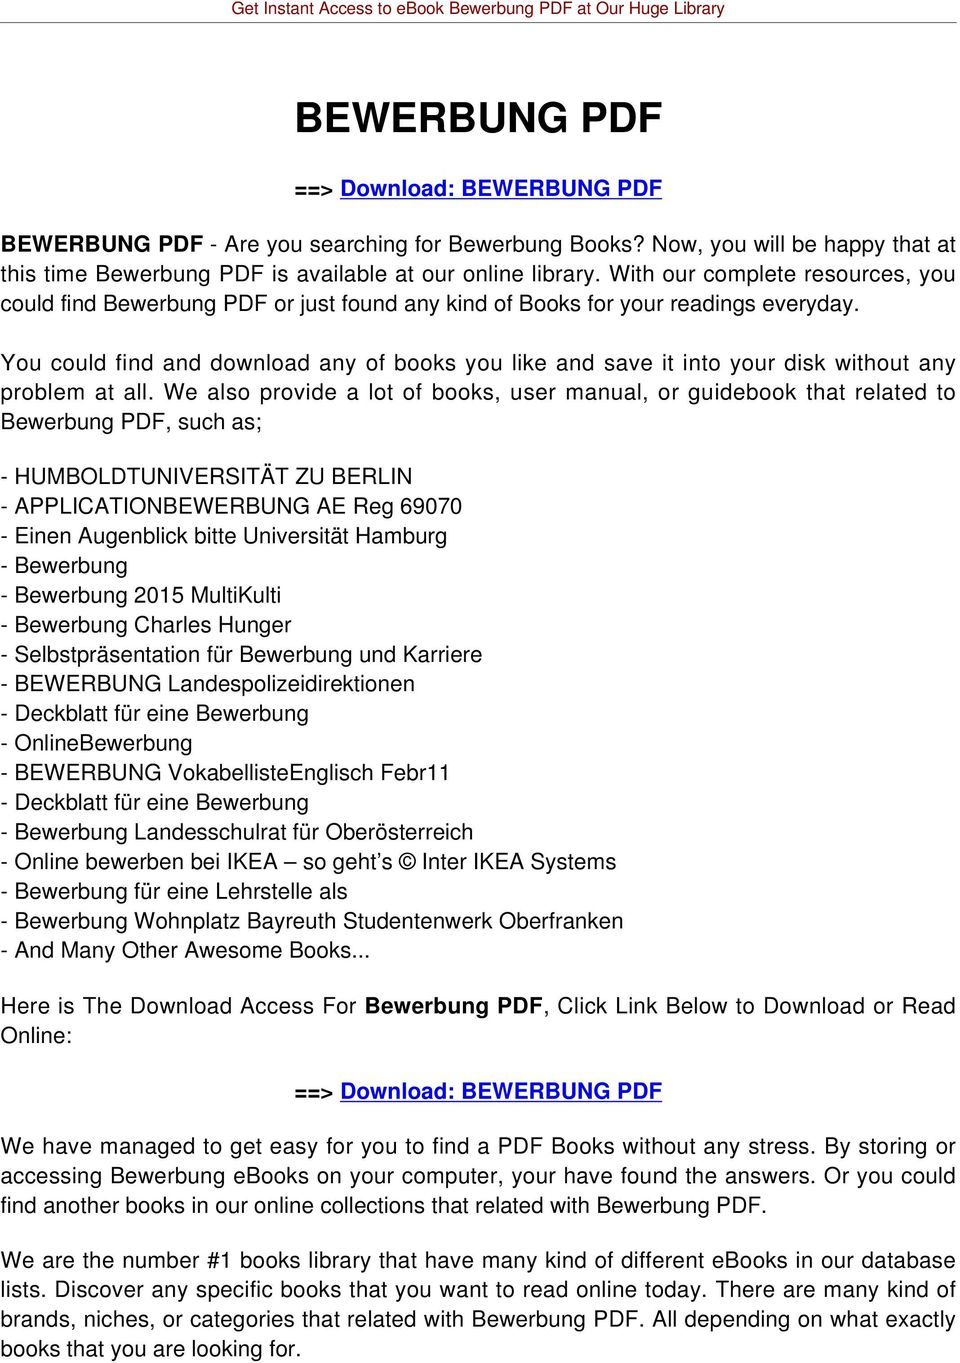 Get Instant Access To Ebook Bewerbung Pdf At Our Huge Library